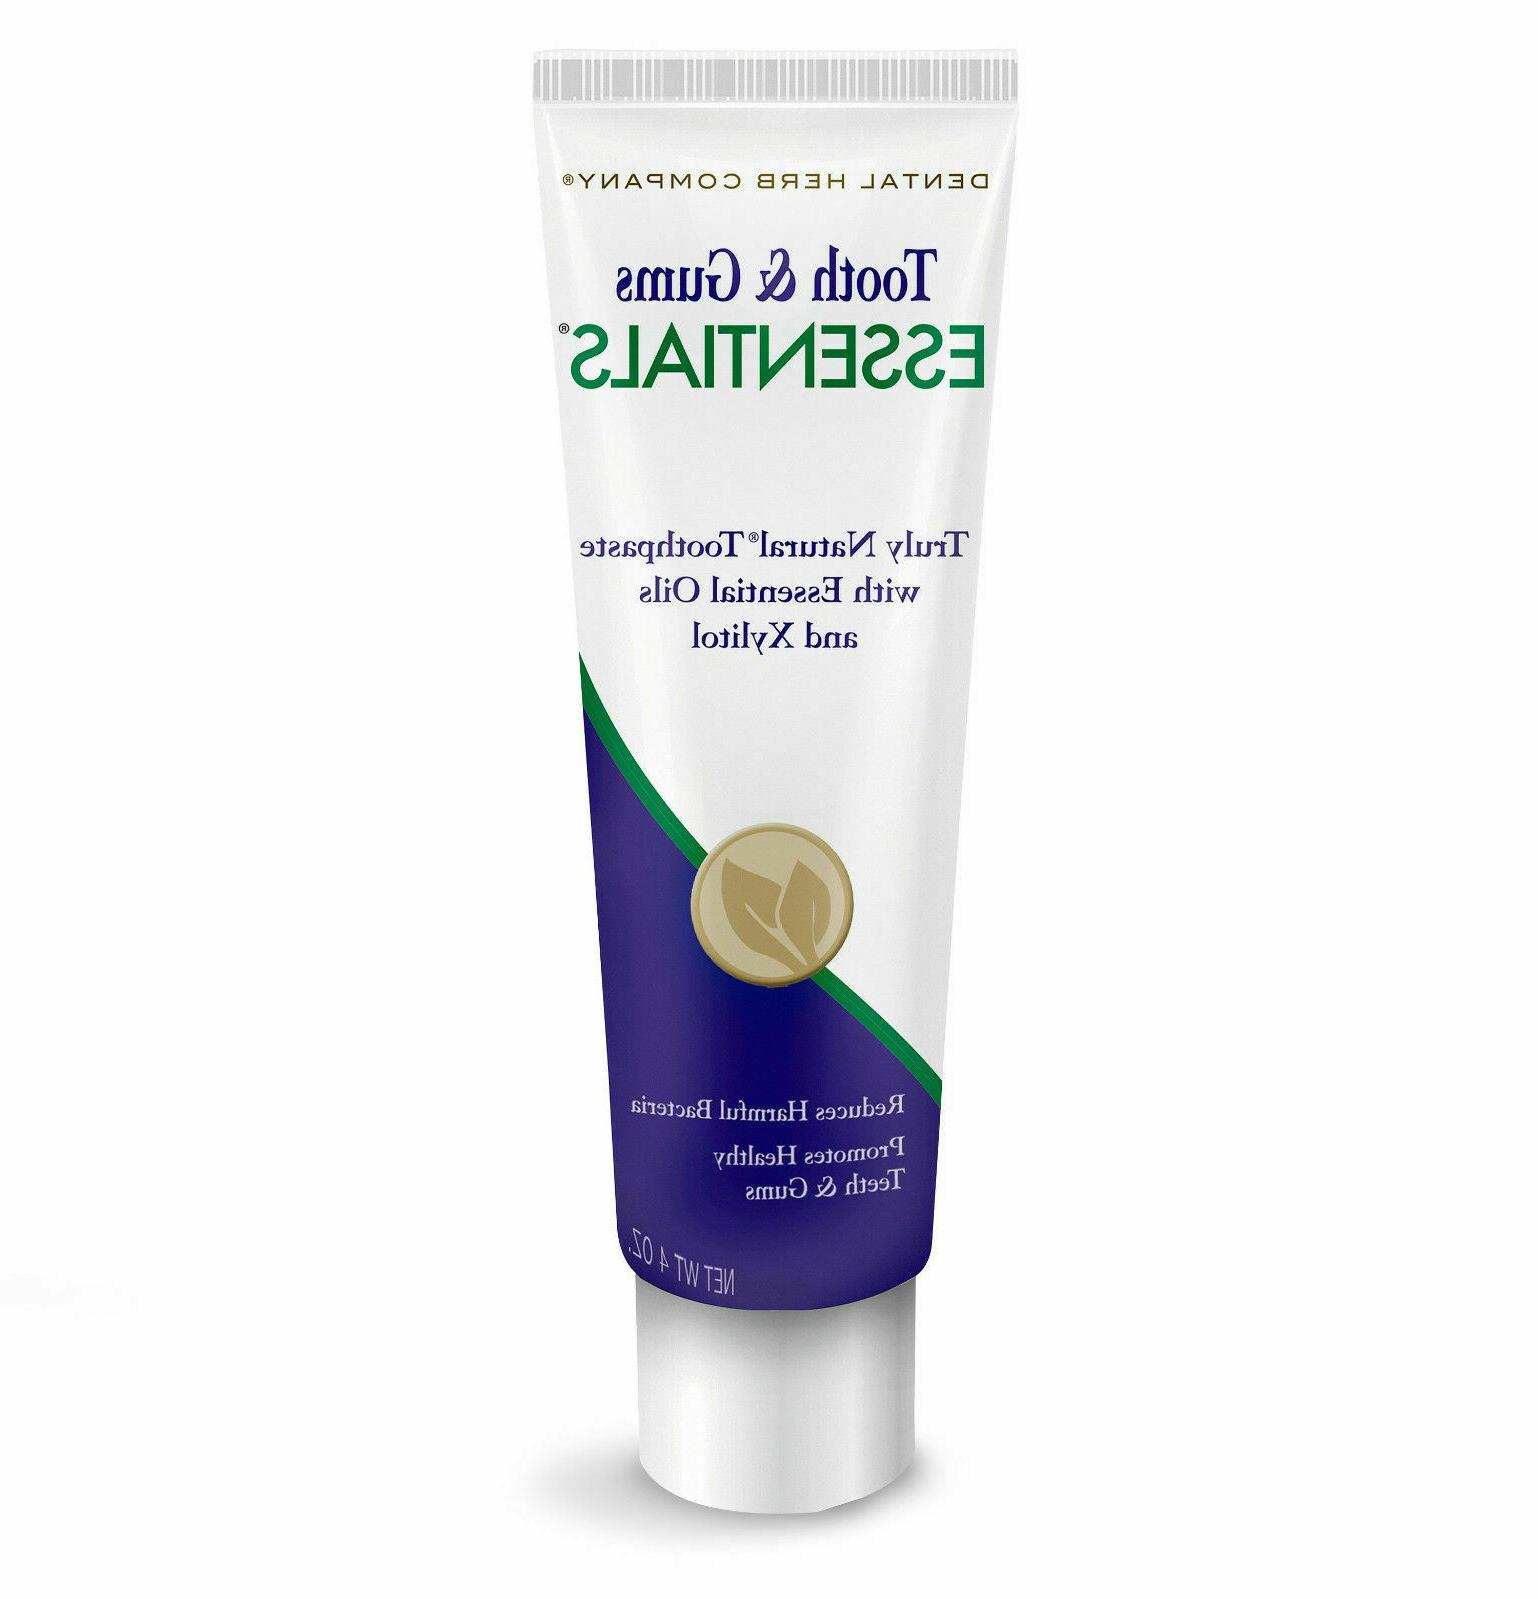 tooth and gums essentials toothpaste 4 ounce